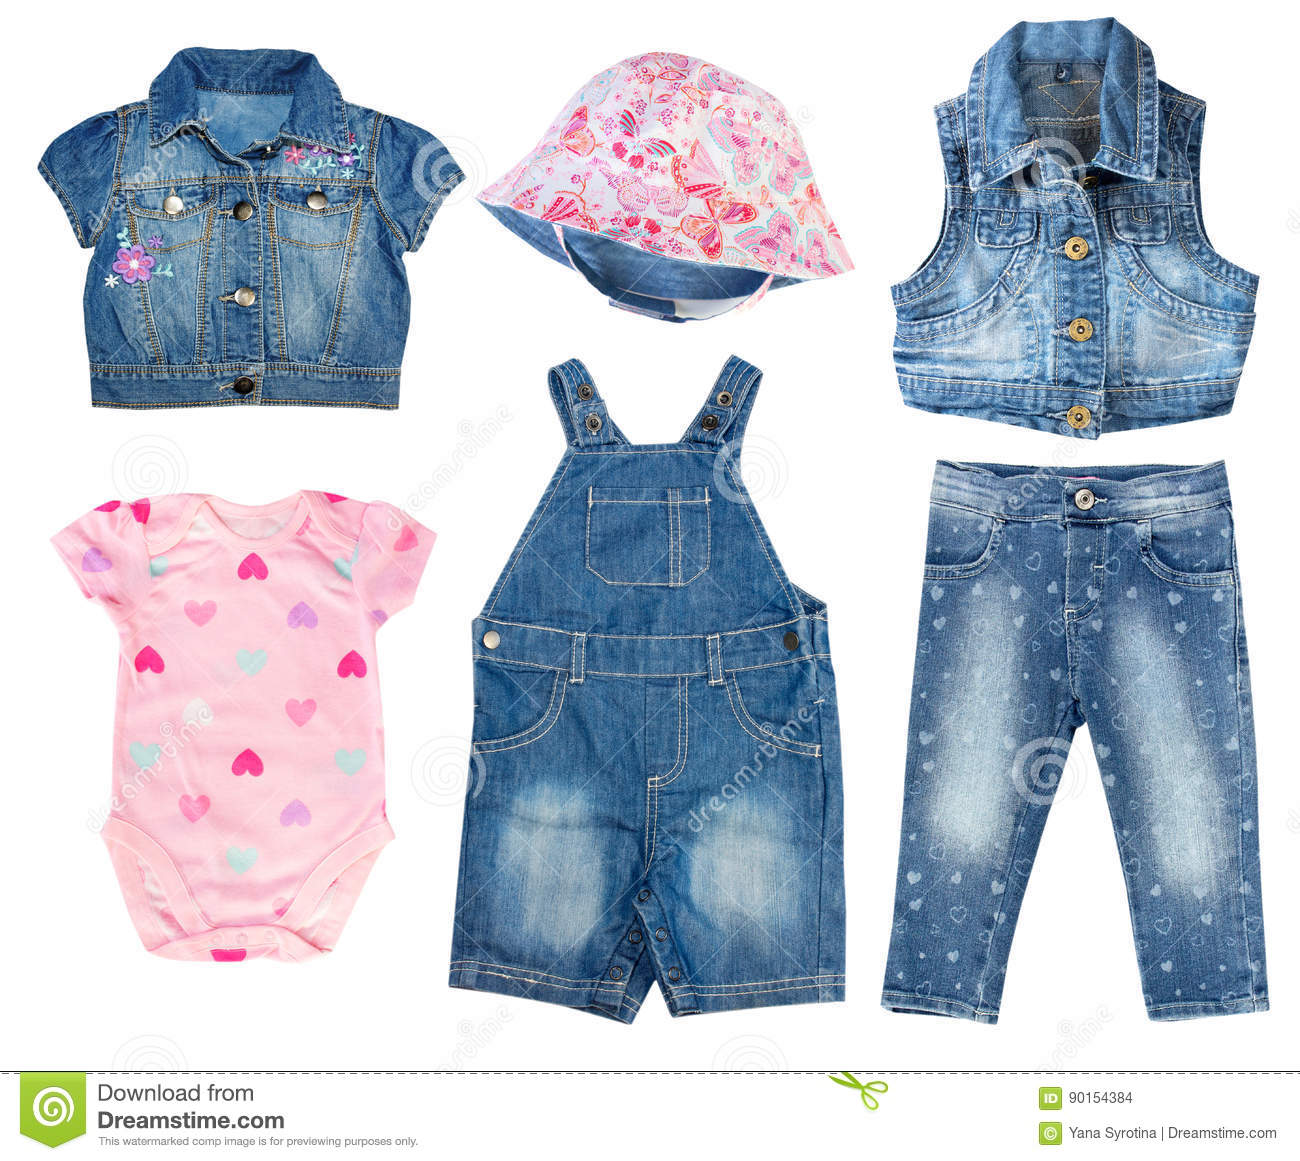 51c5433a0a5 Denim Jean Baby Toddler Summer Clothes Set Isolated. Stock Photo ...